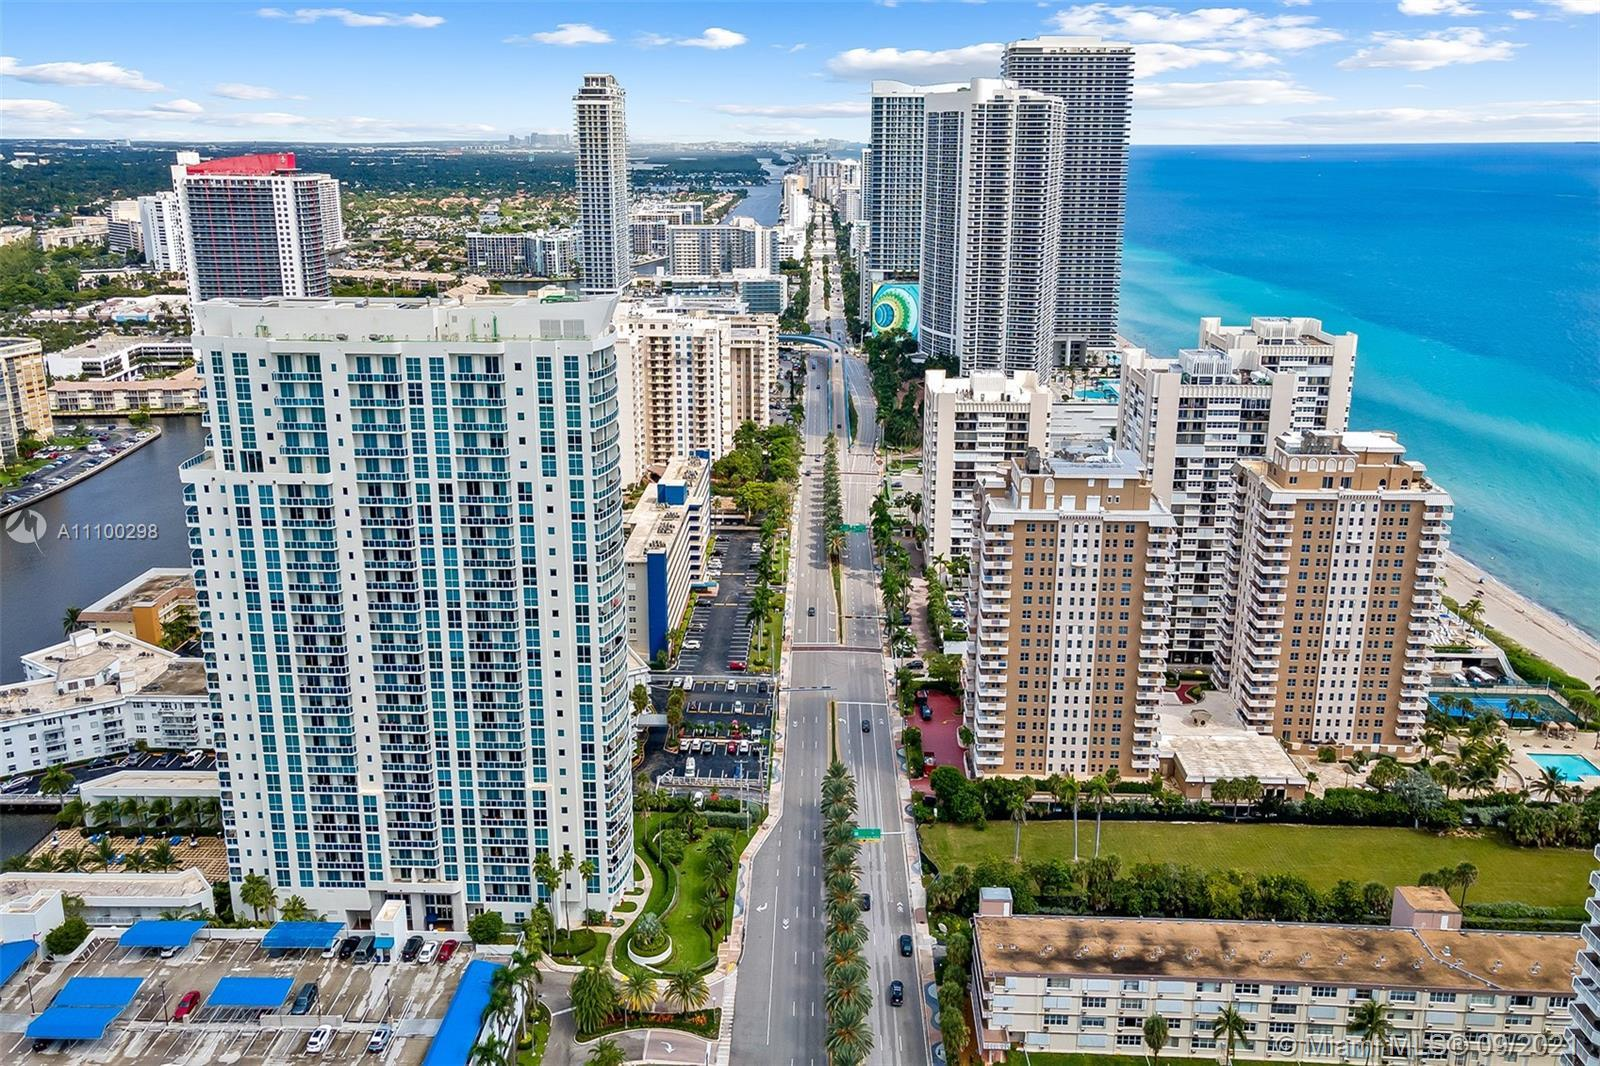 Soaring Oceanfront views - 23rd Floor - HARD TO FIND Corner unit Condo - Panoramic view of the Atlan